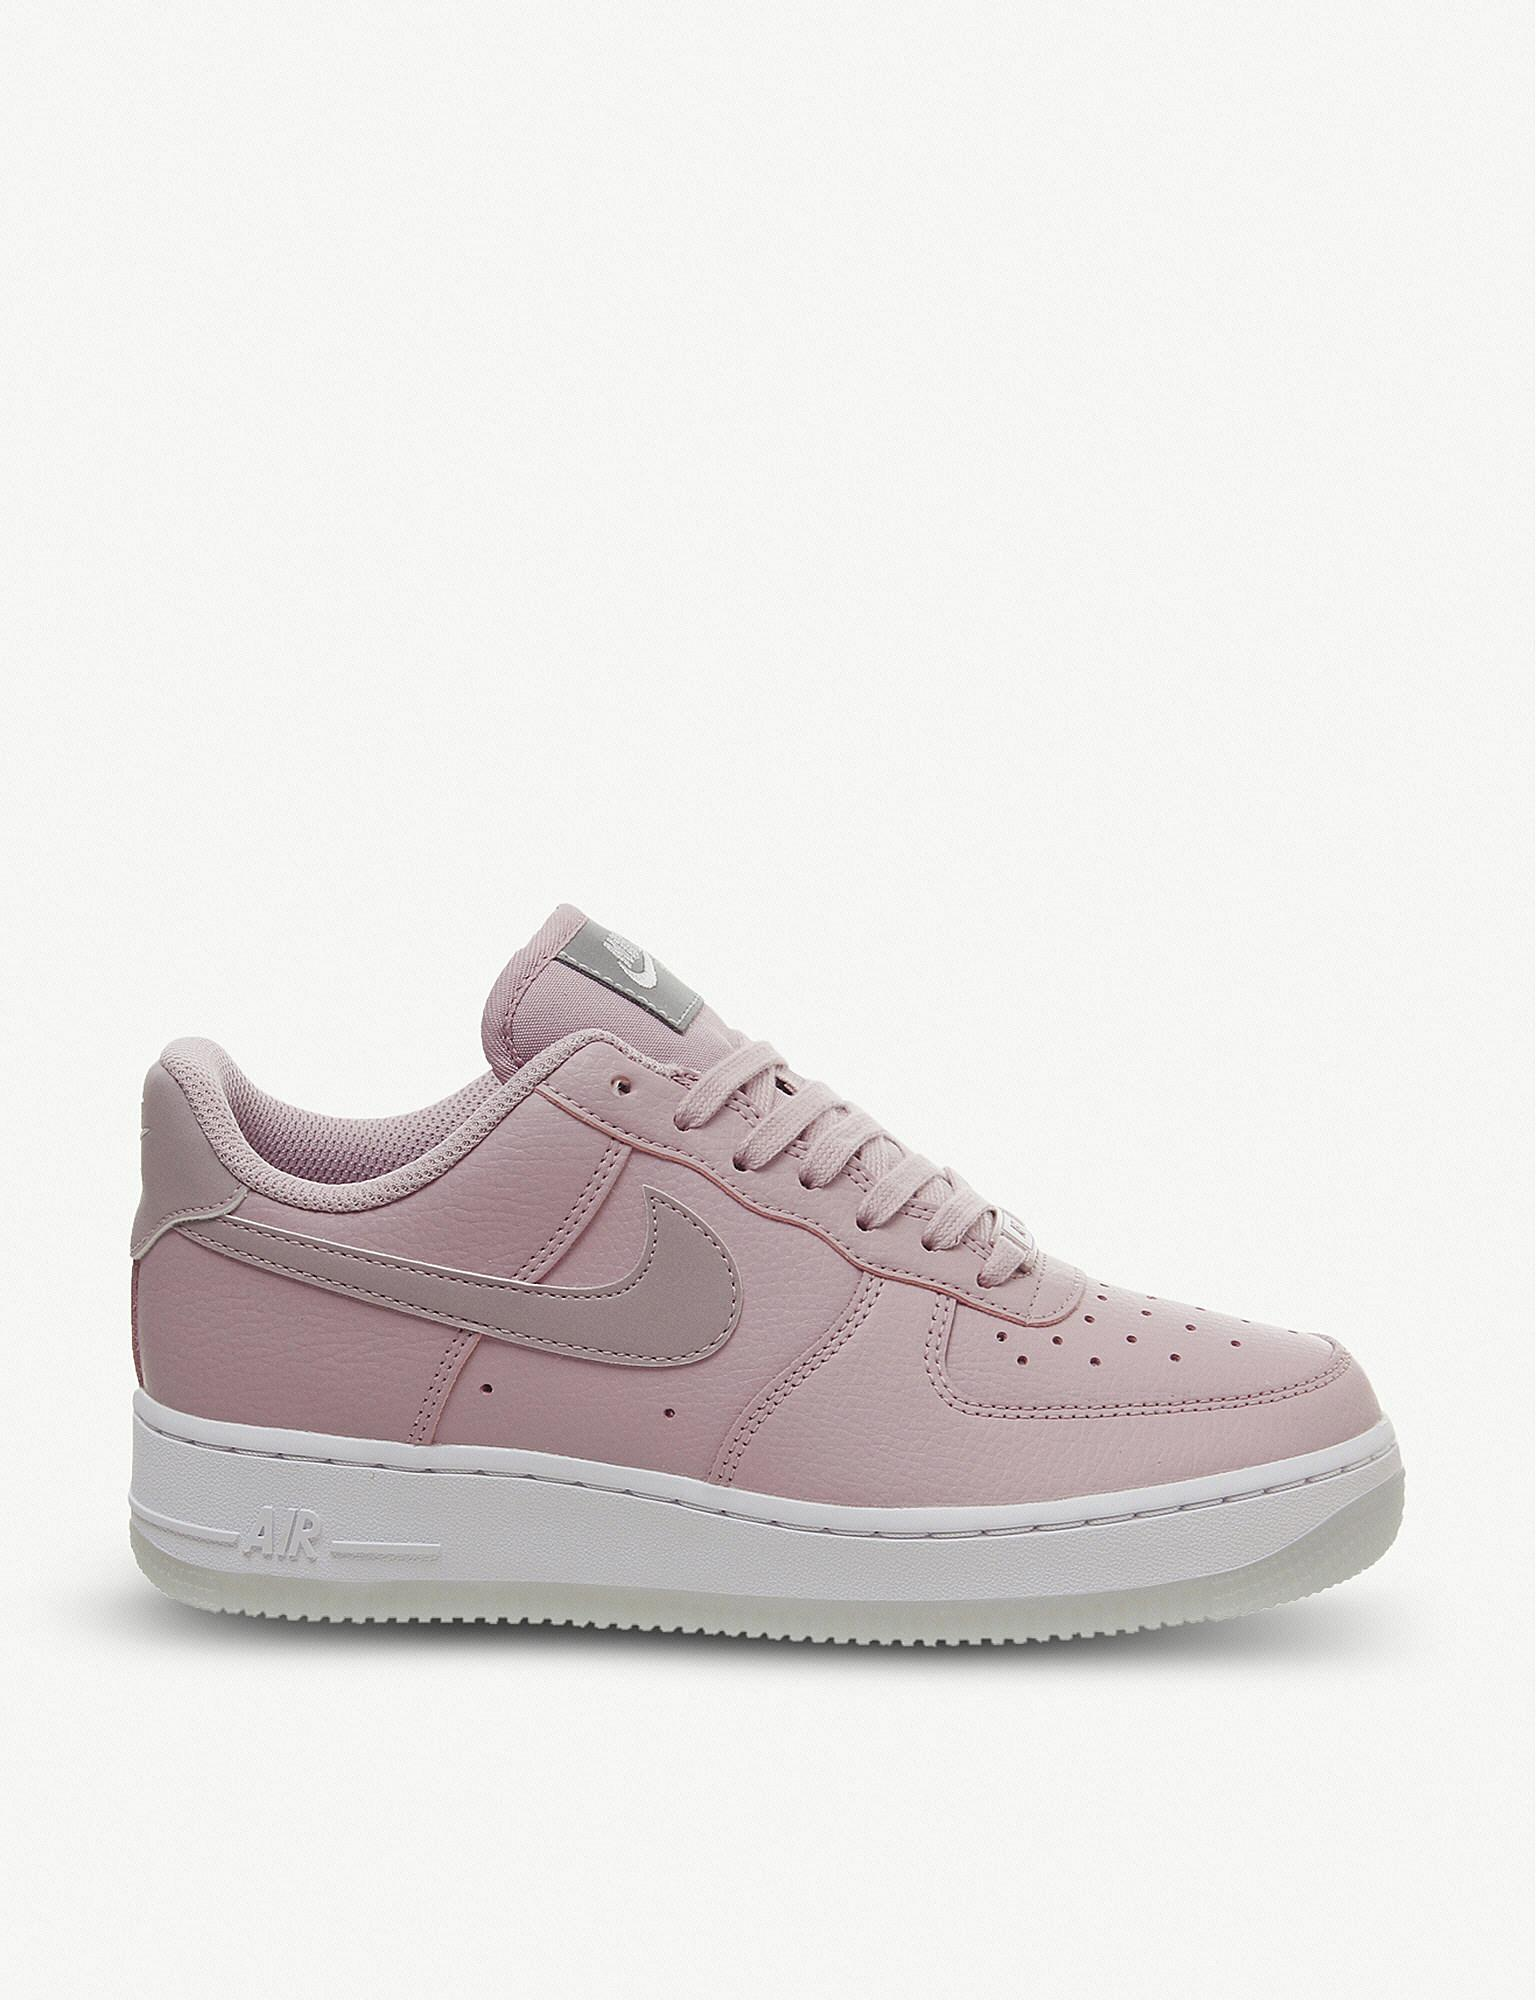 cheap for discount b8c0f 8bd5f Nike. Women s Air Force 1 07 Leather Trainers